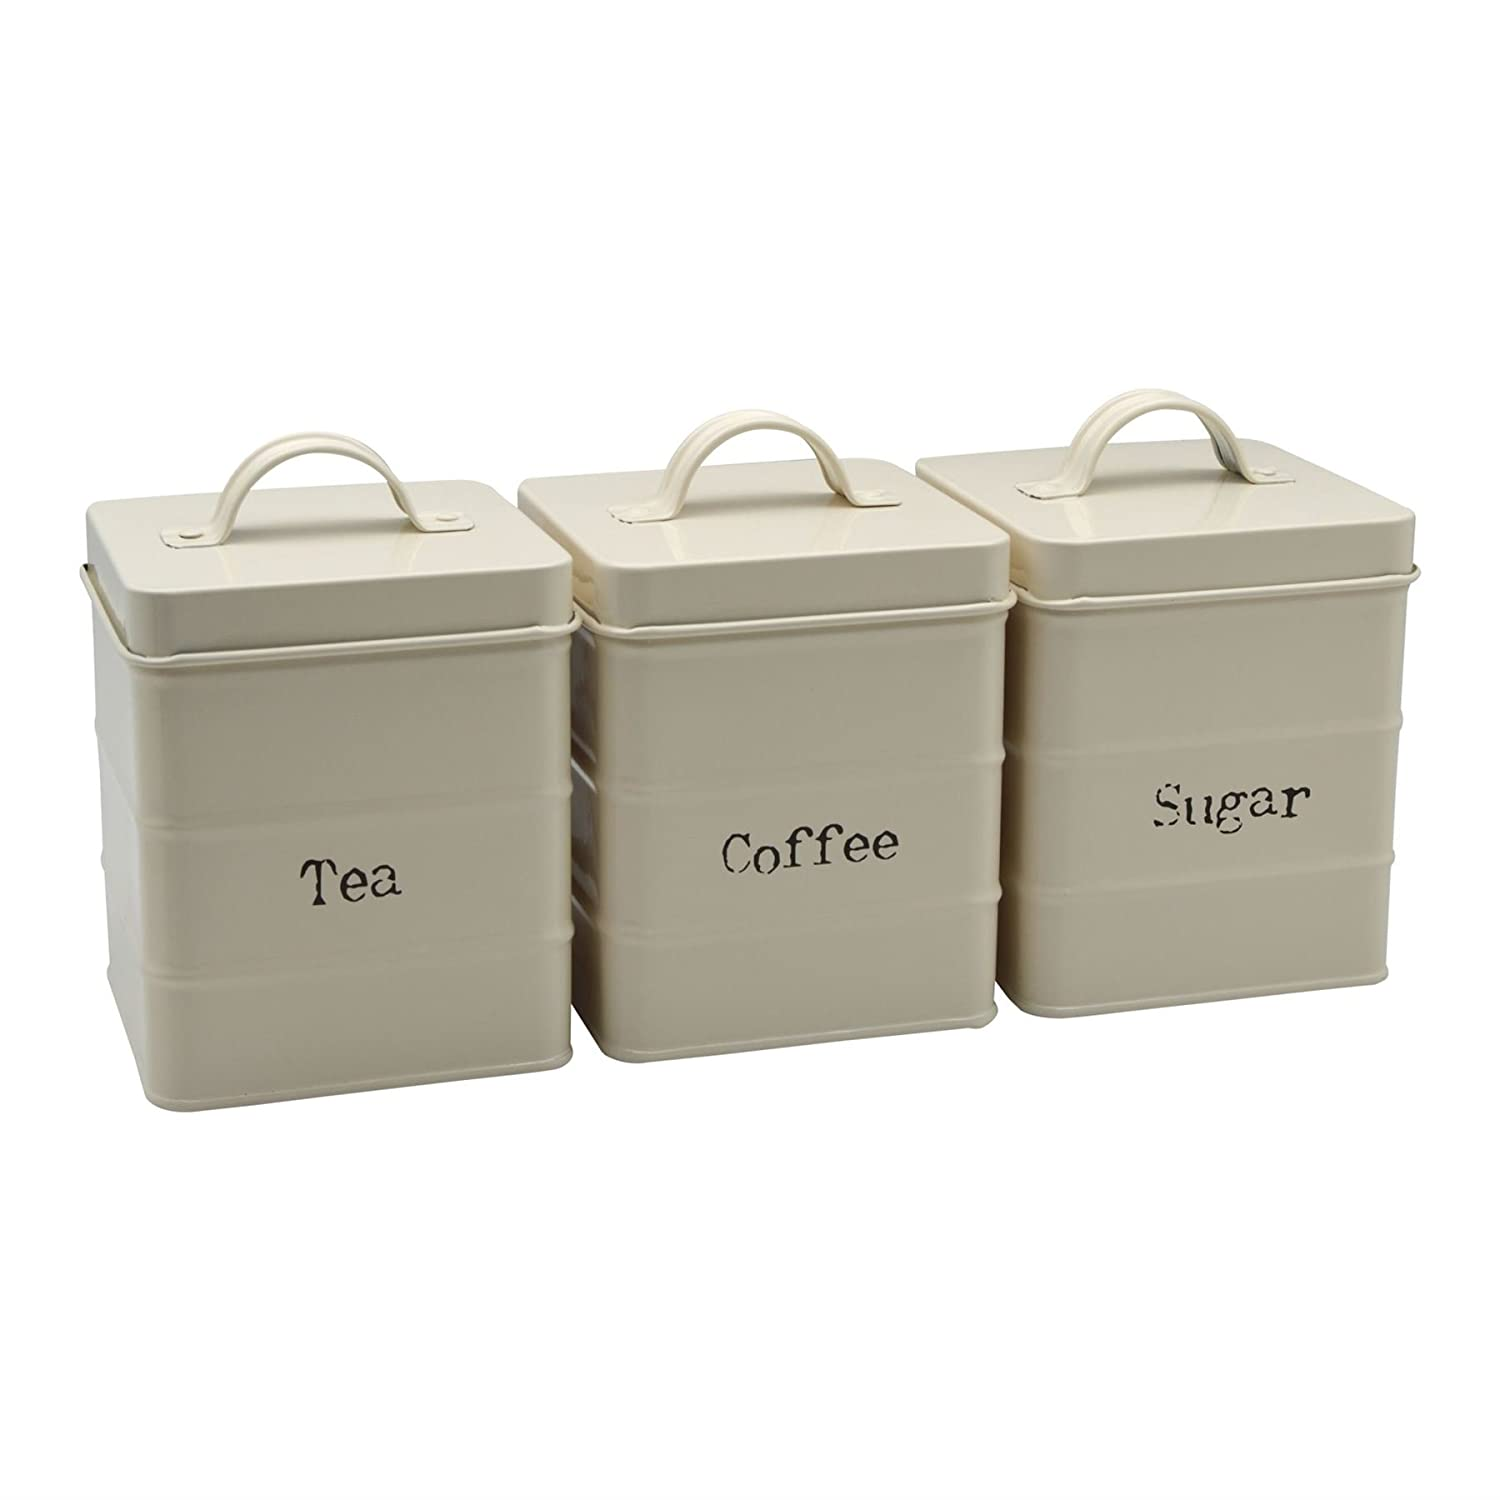 Harbour Housewares Metal Tea, Coffee, Sugar Canister Set - Cream